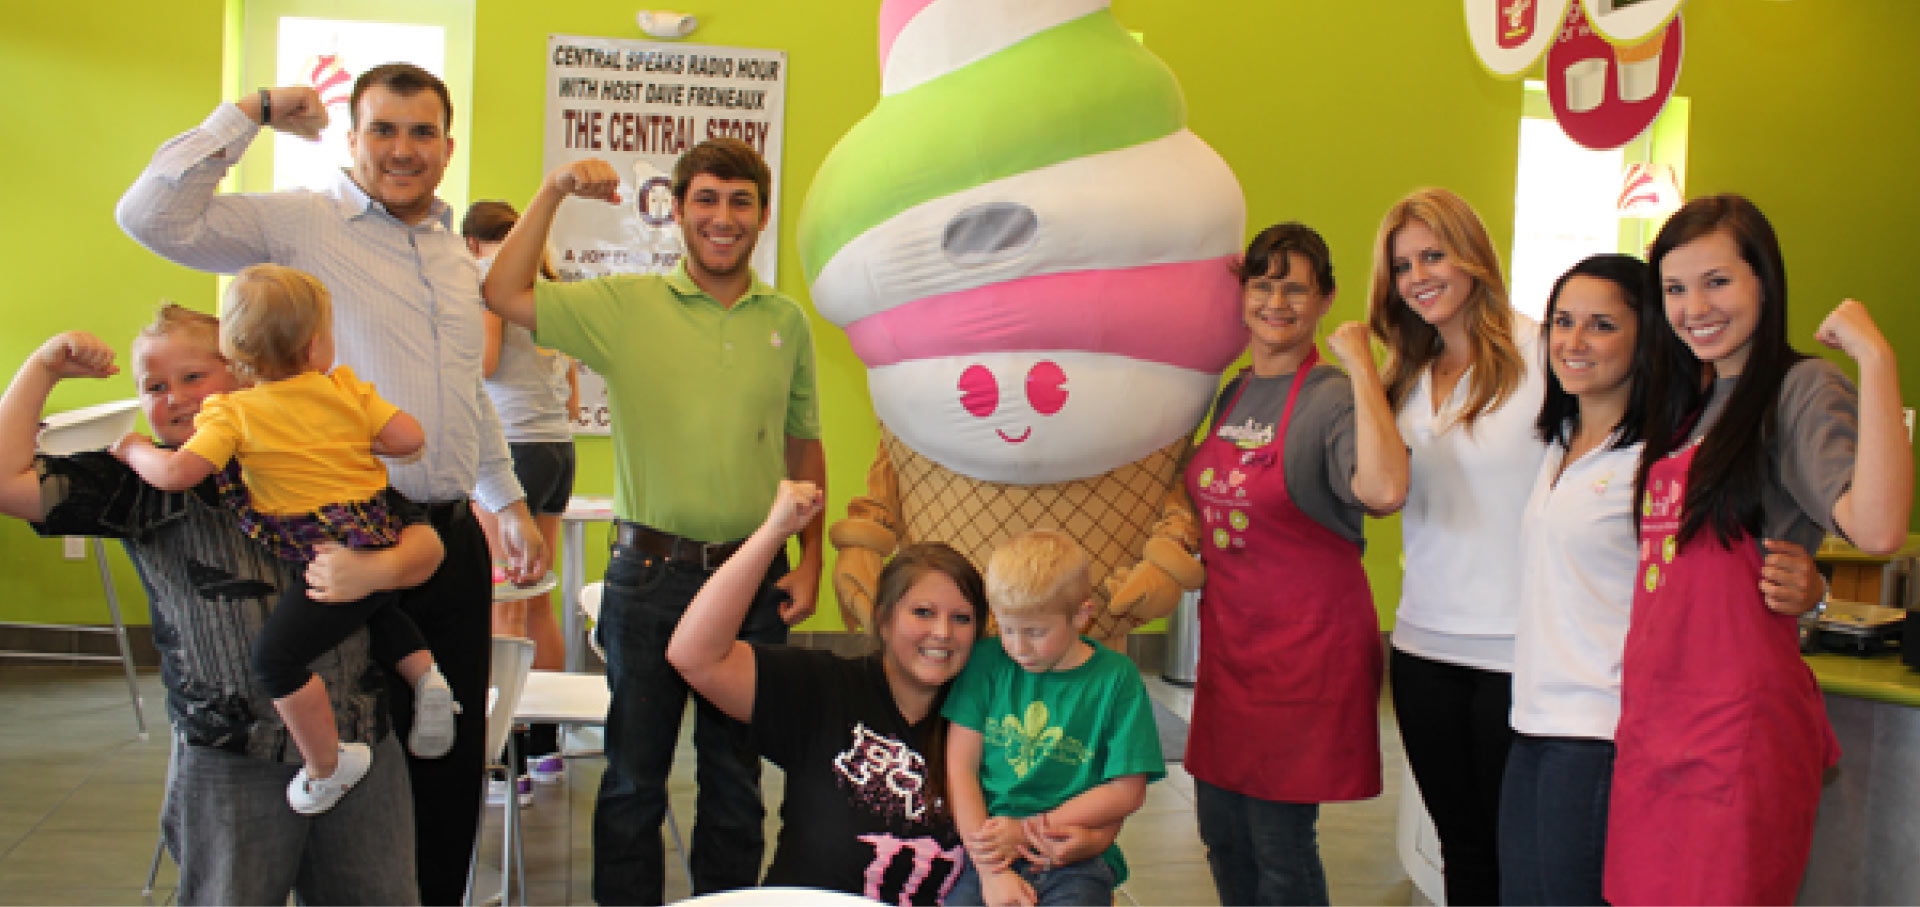 Menchie's team members posing with customers inside a store